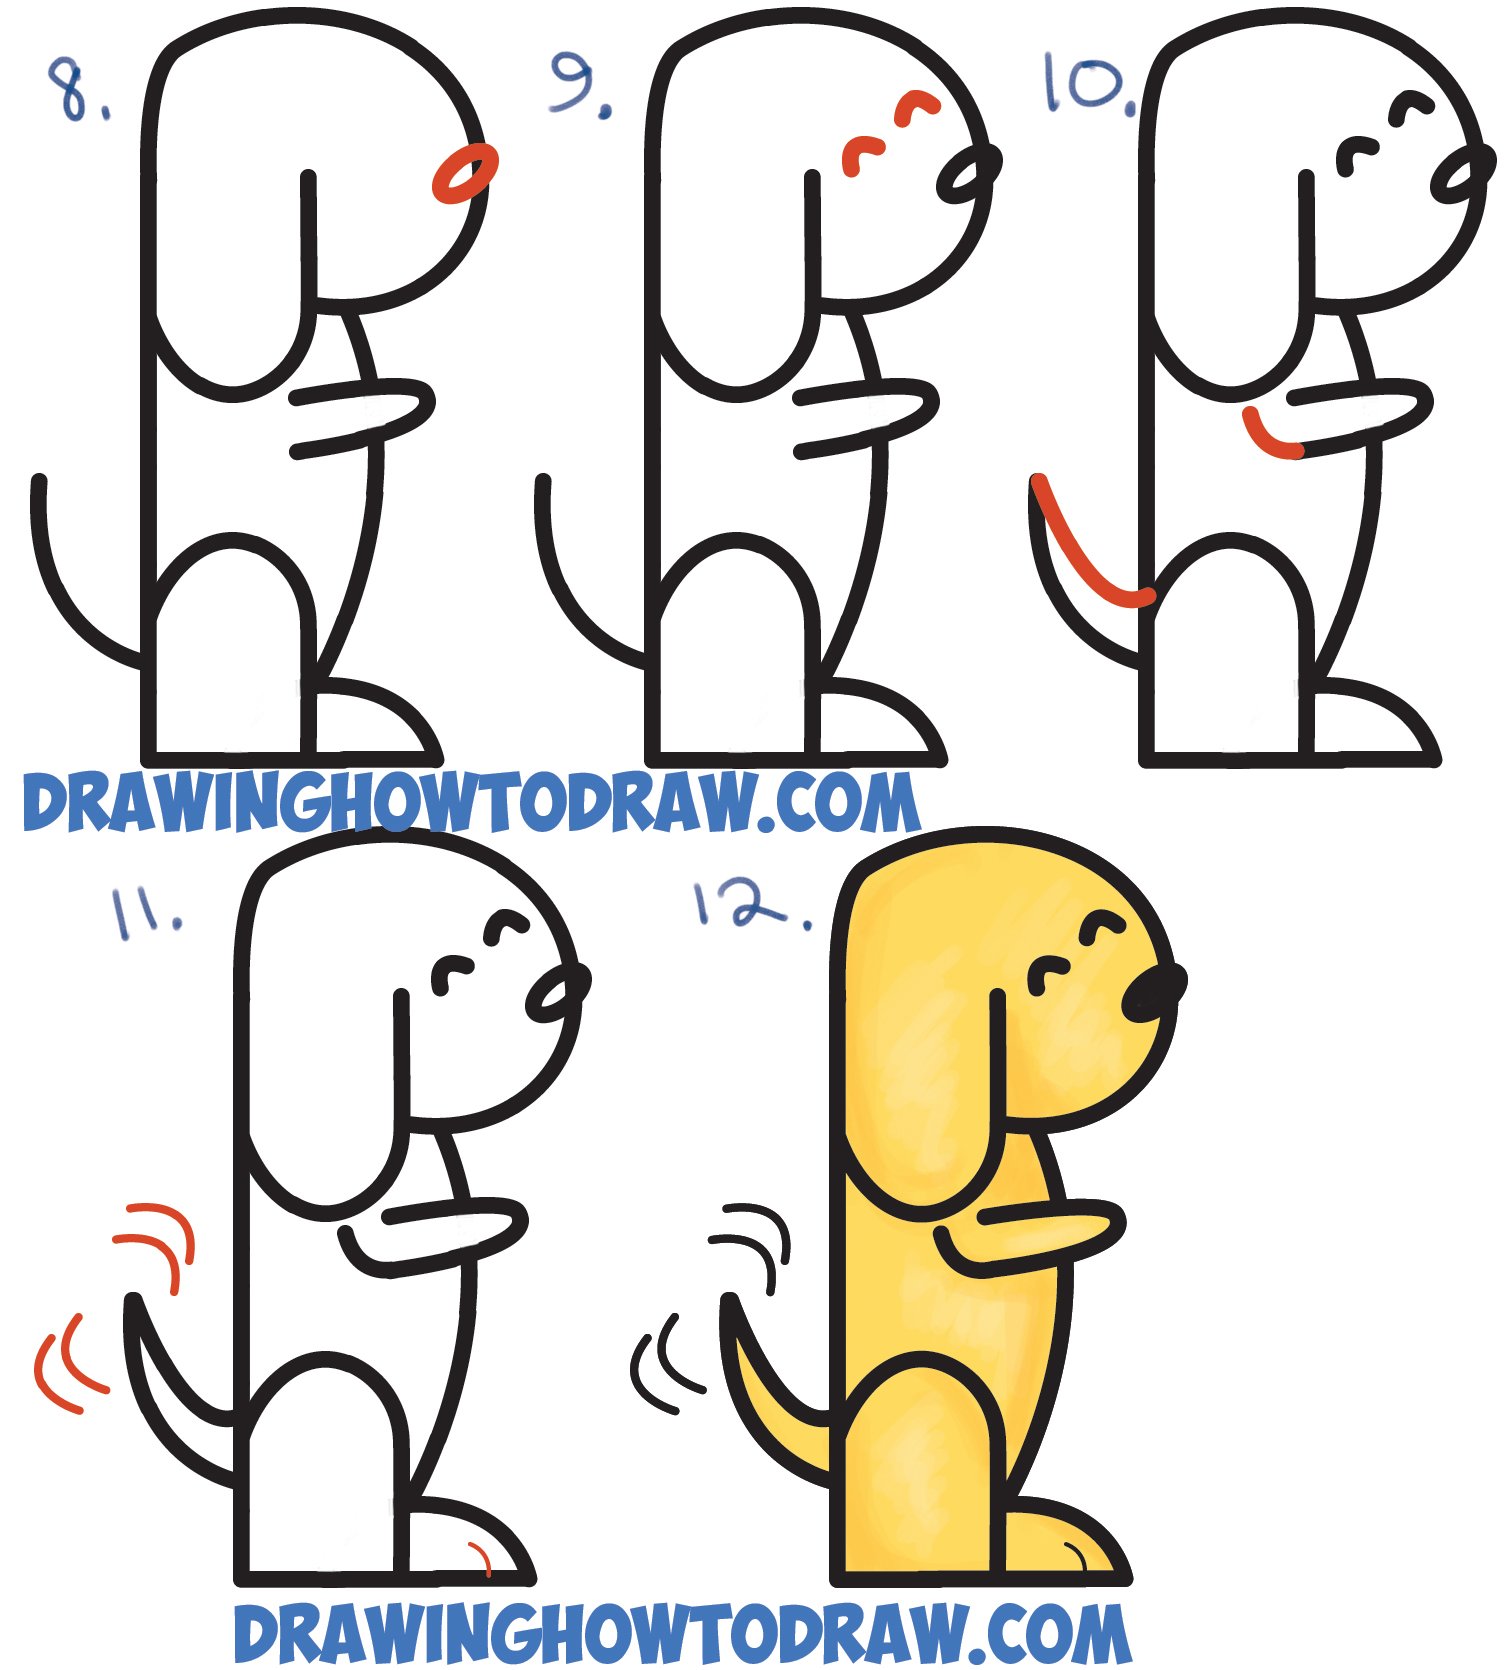 Cute Dog Drawing Easy at GetDrawings com | Free for personal